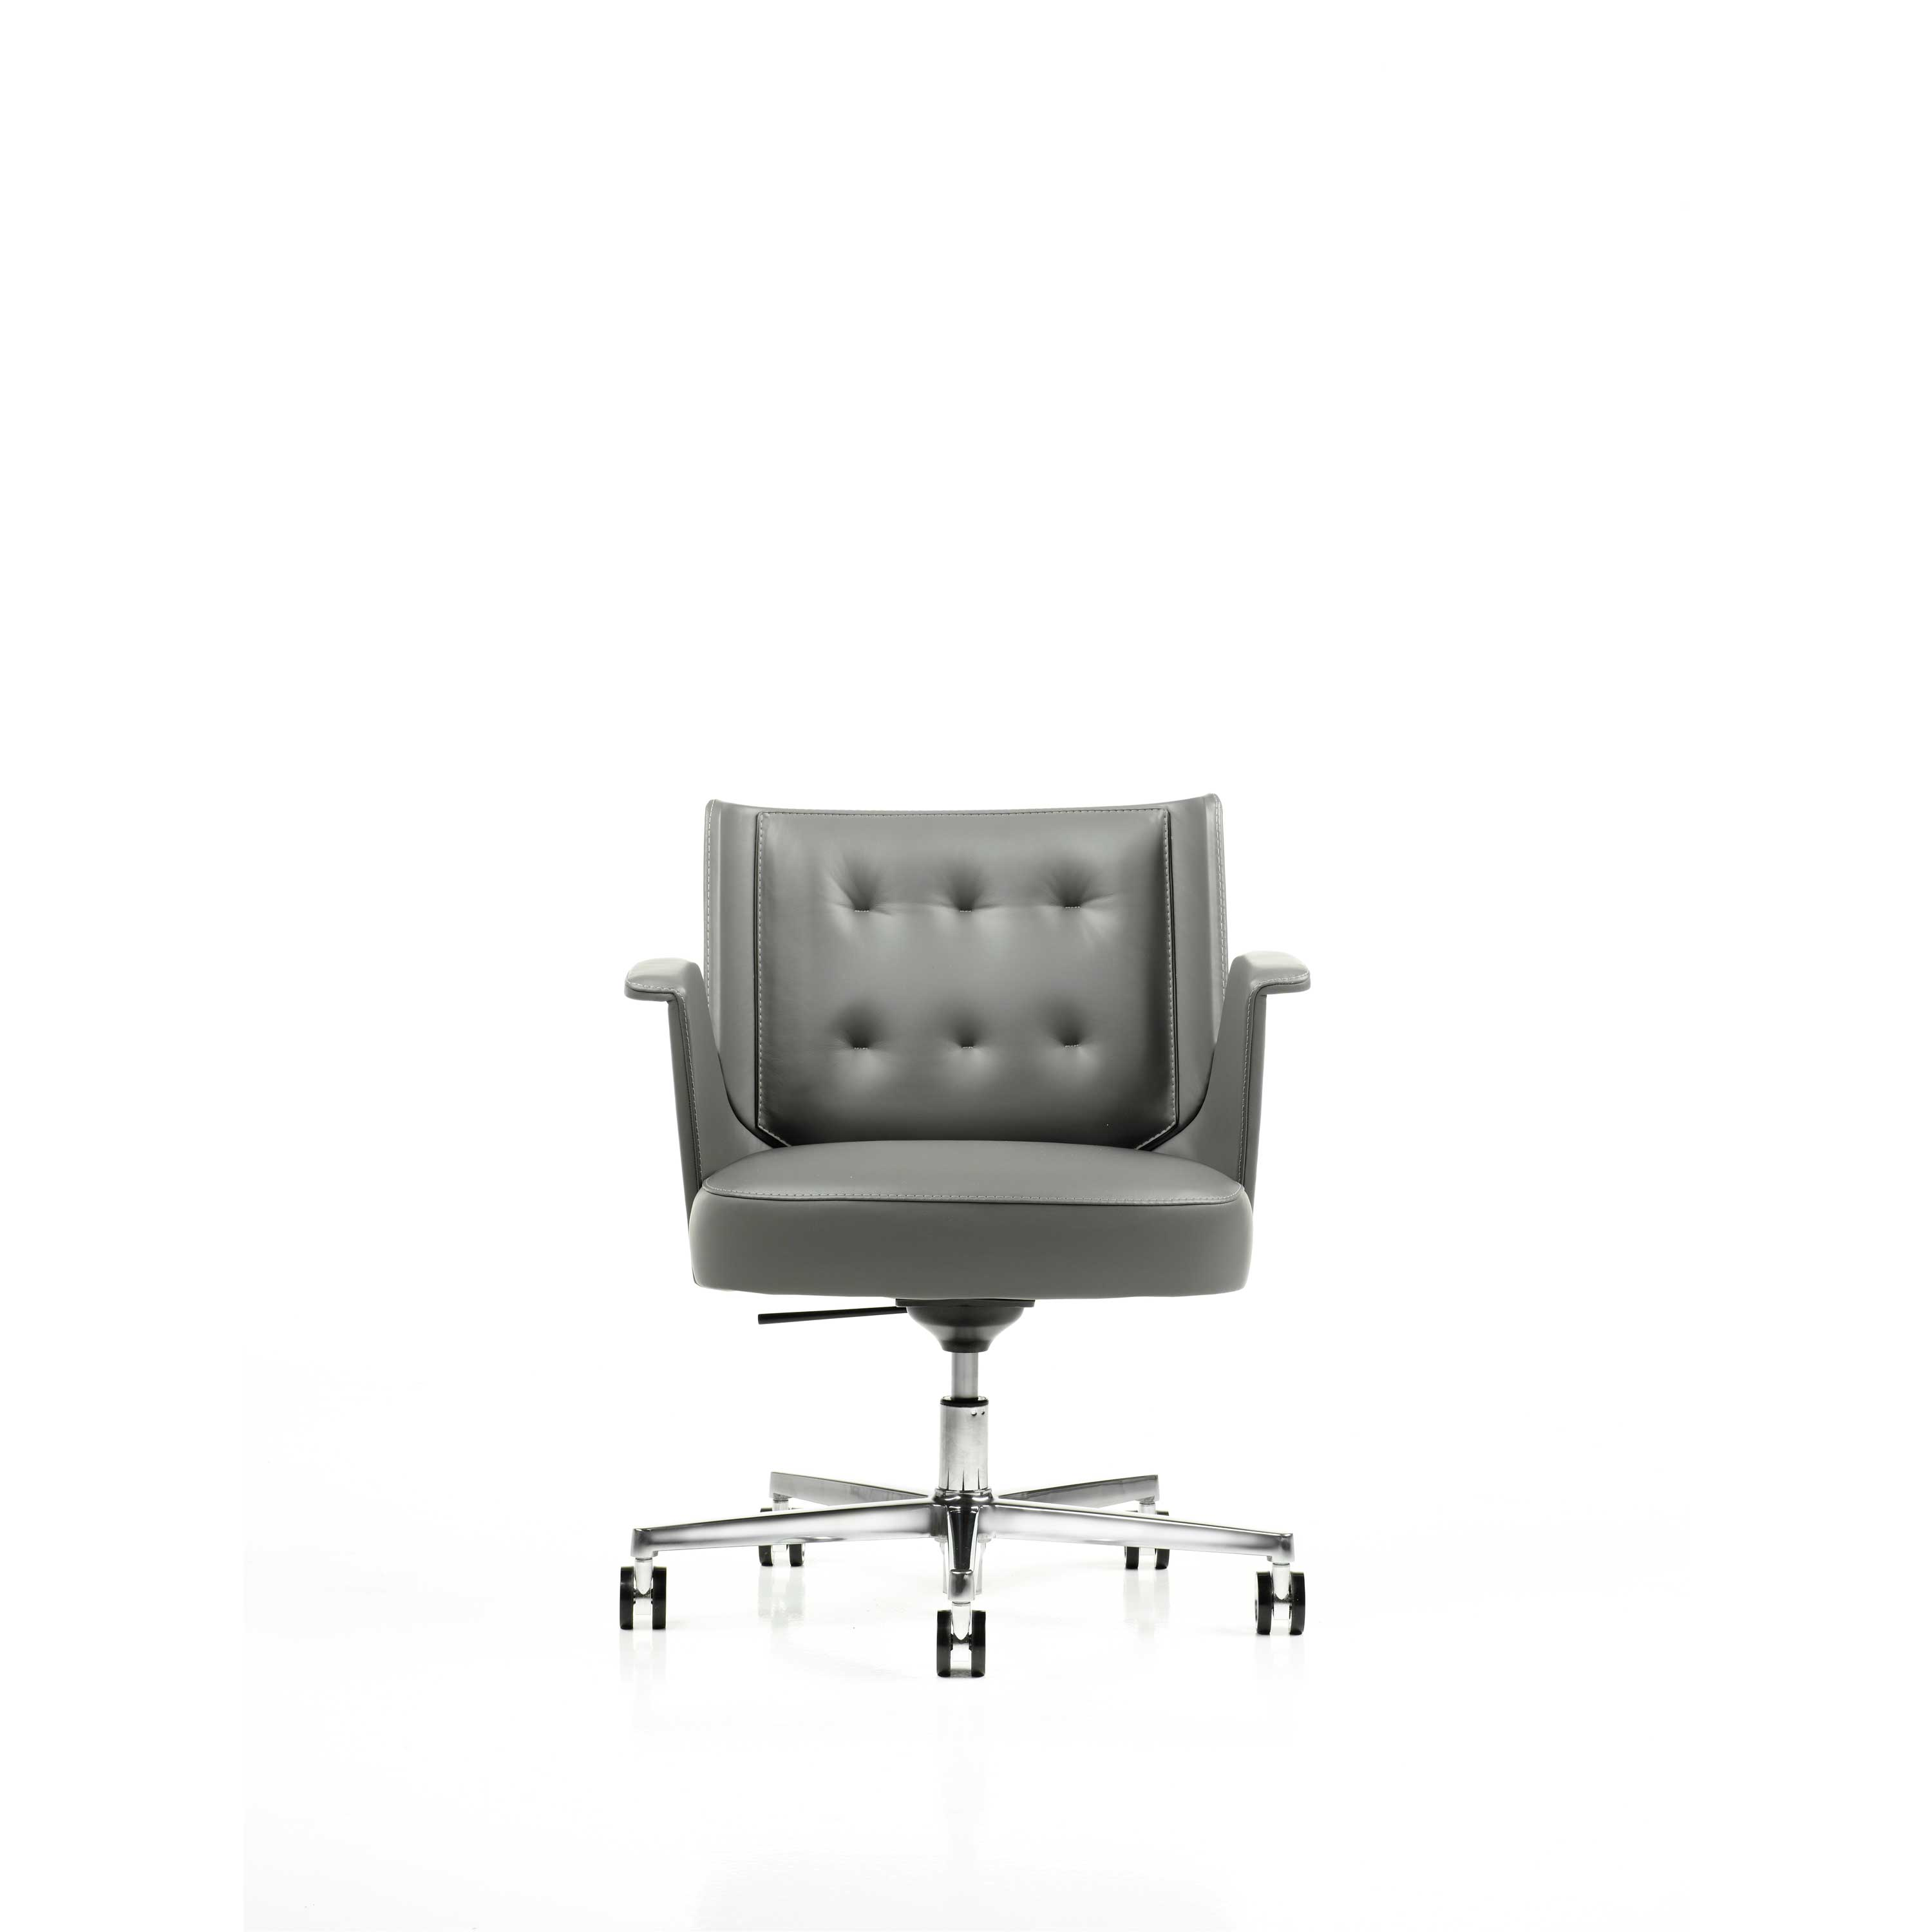 07S_Estel_Comfort&Relax_Office-Chair_Embrasse